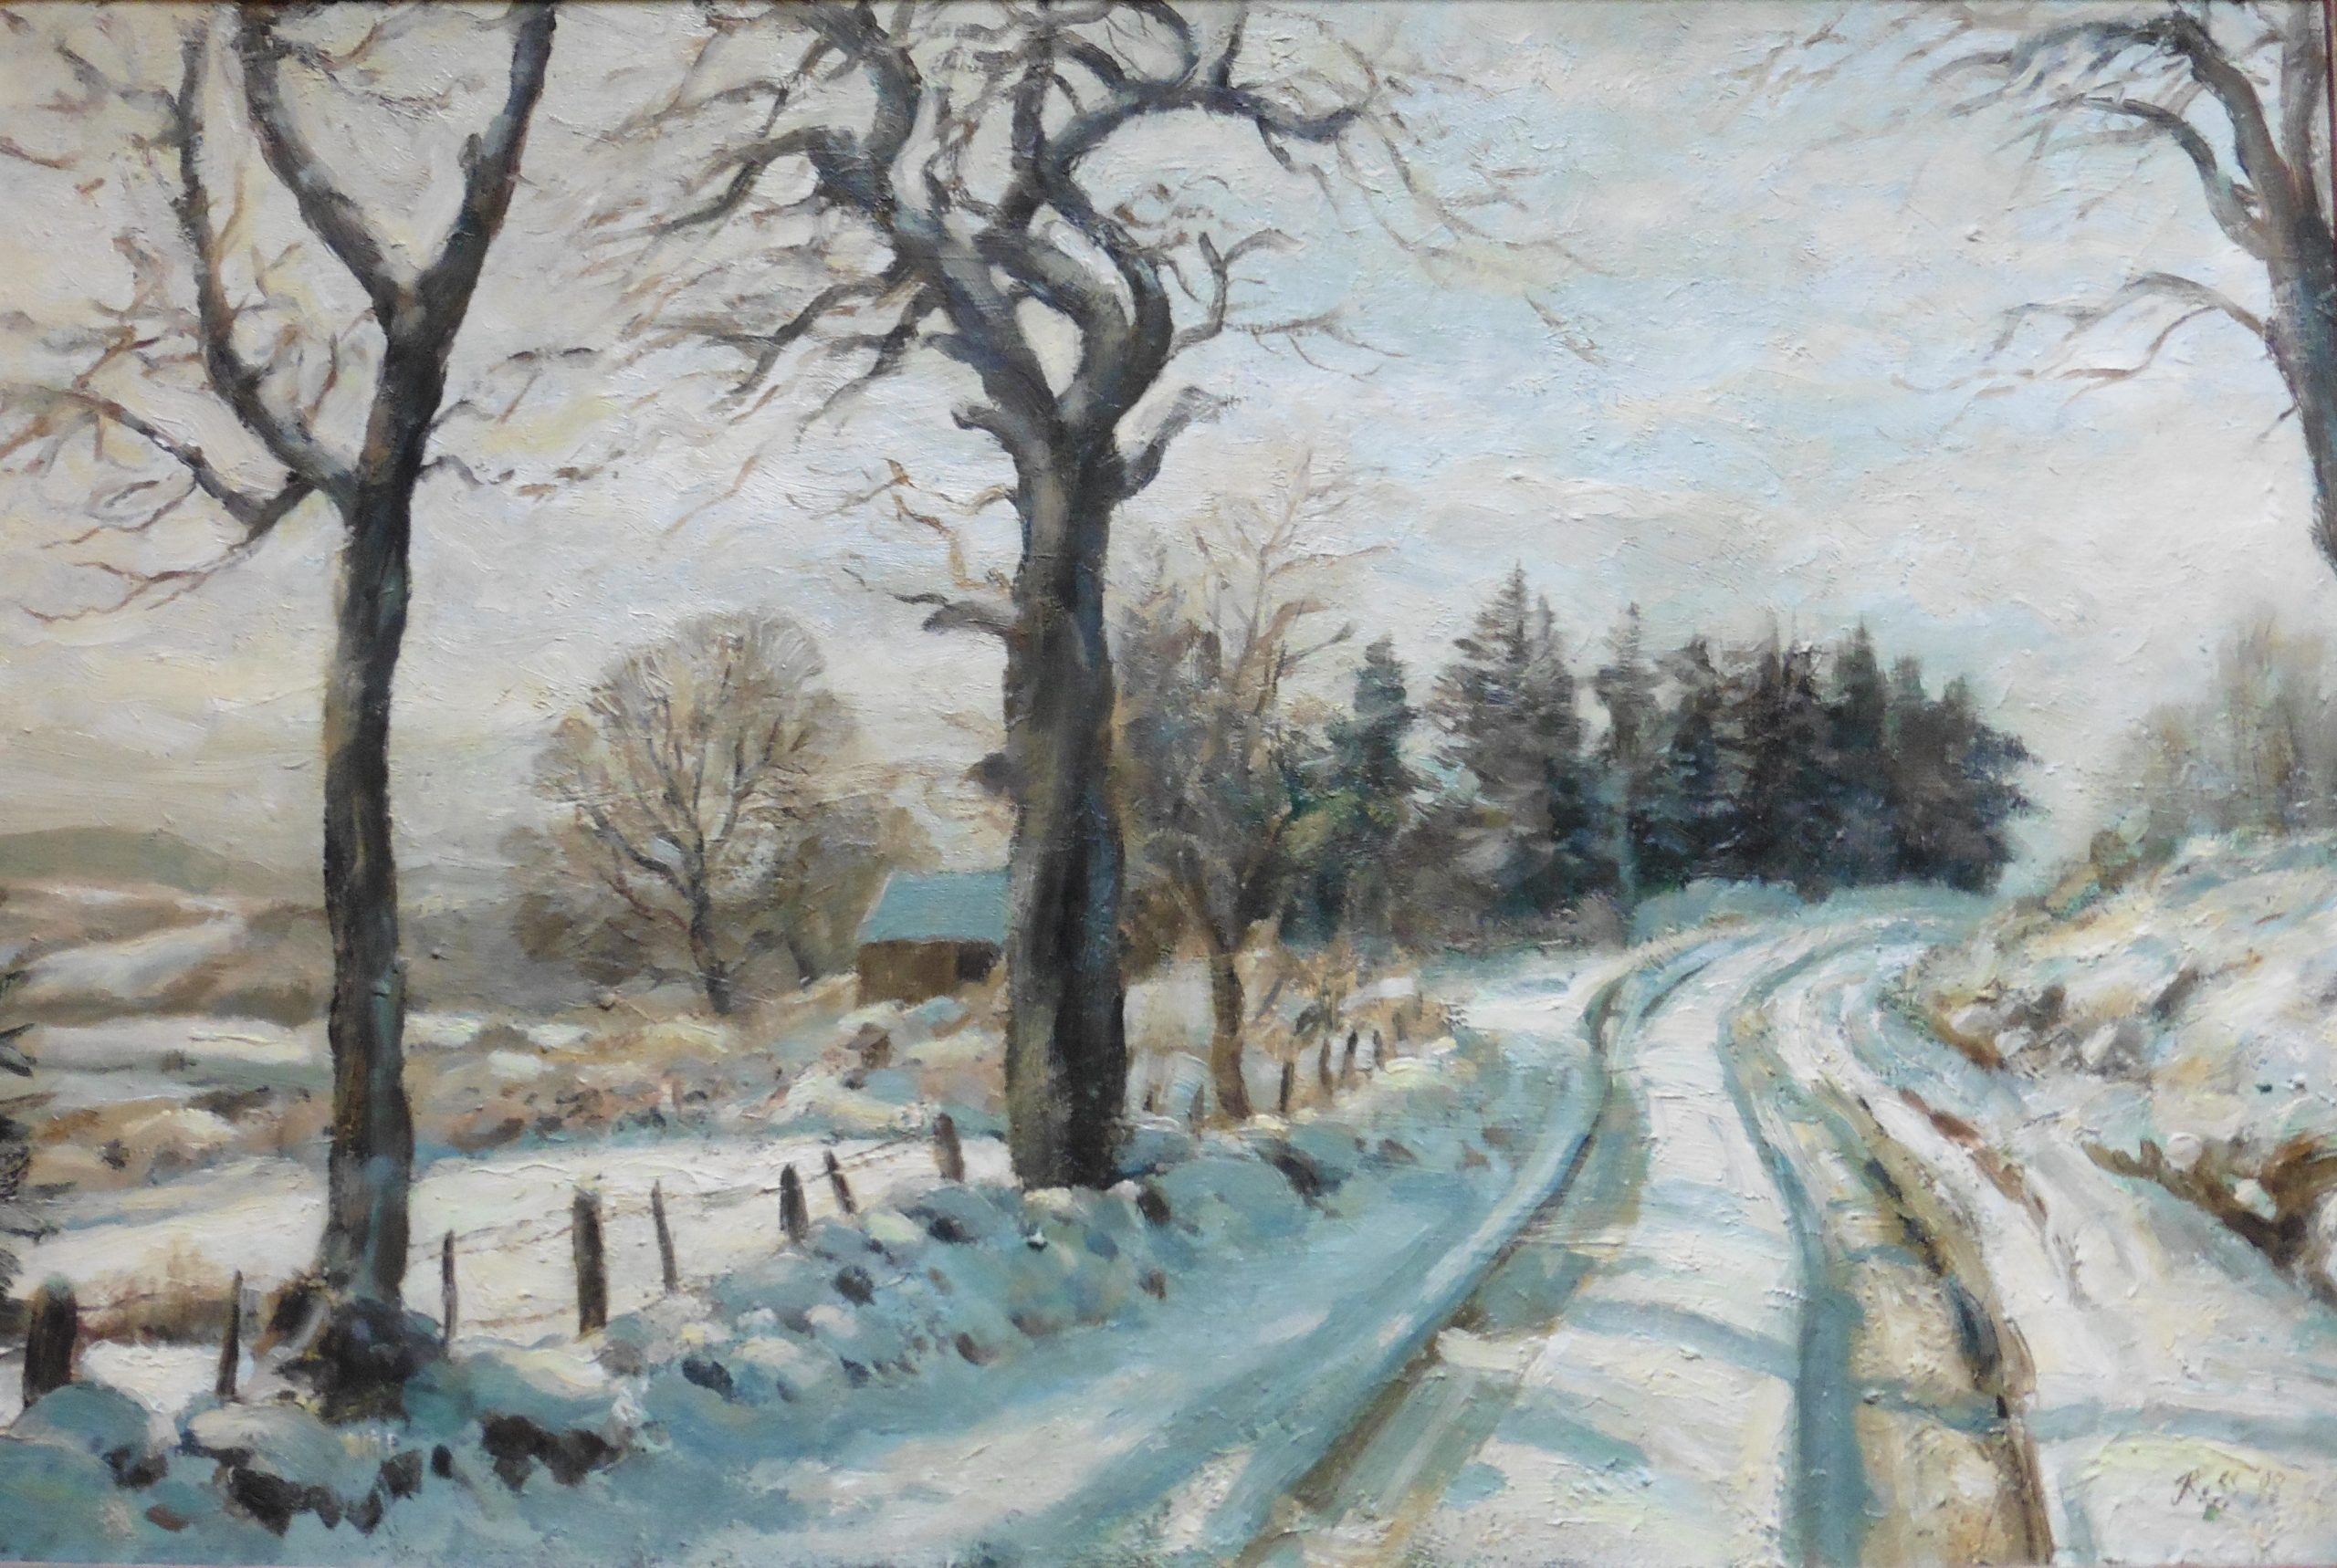 The winter Road by John Ross